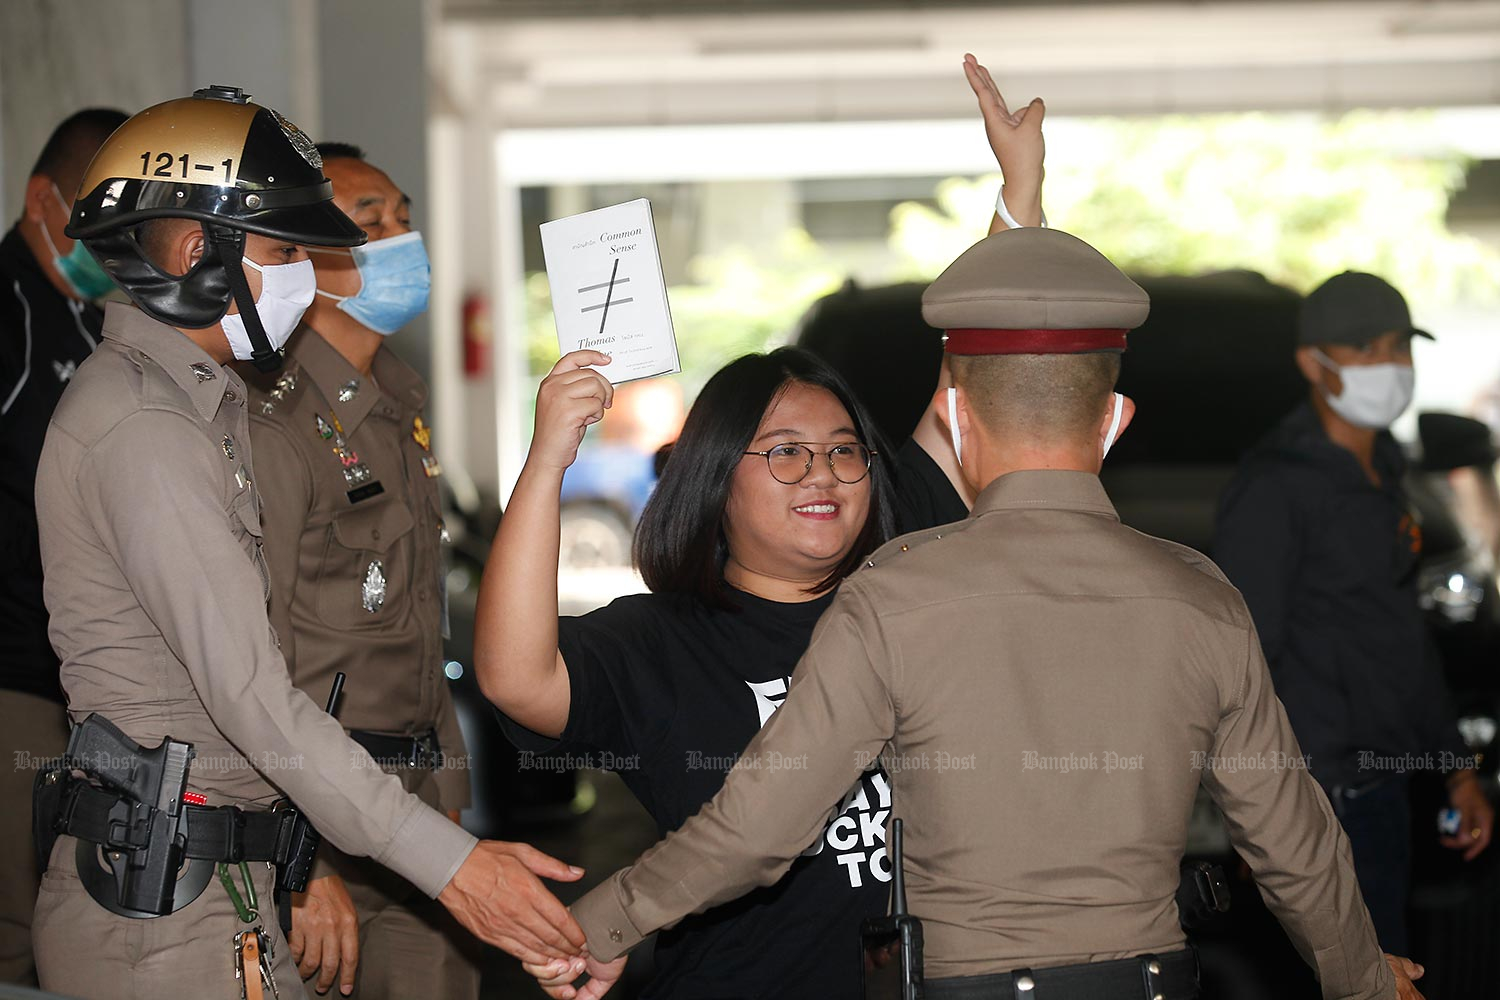 Jutatip Sirikhan, 21, the president of the Student Union of Thailand, holds a book titled 'Common Sense' at Samranrat police station in Bangkok's Phra Nakhon district following her arrest in connection with the July 18 anti-government protest. (Photo by Nutthawat Wicheanbut)